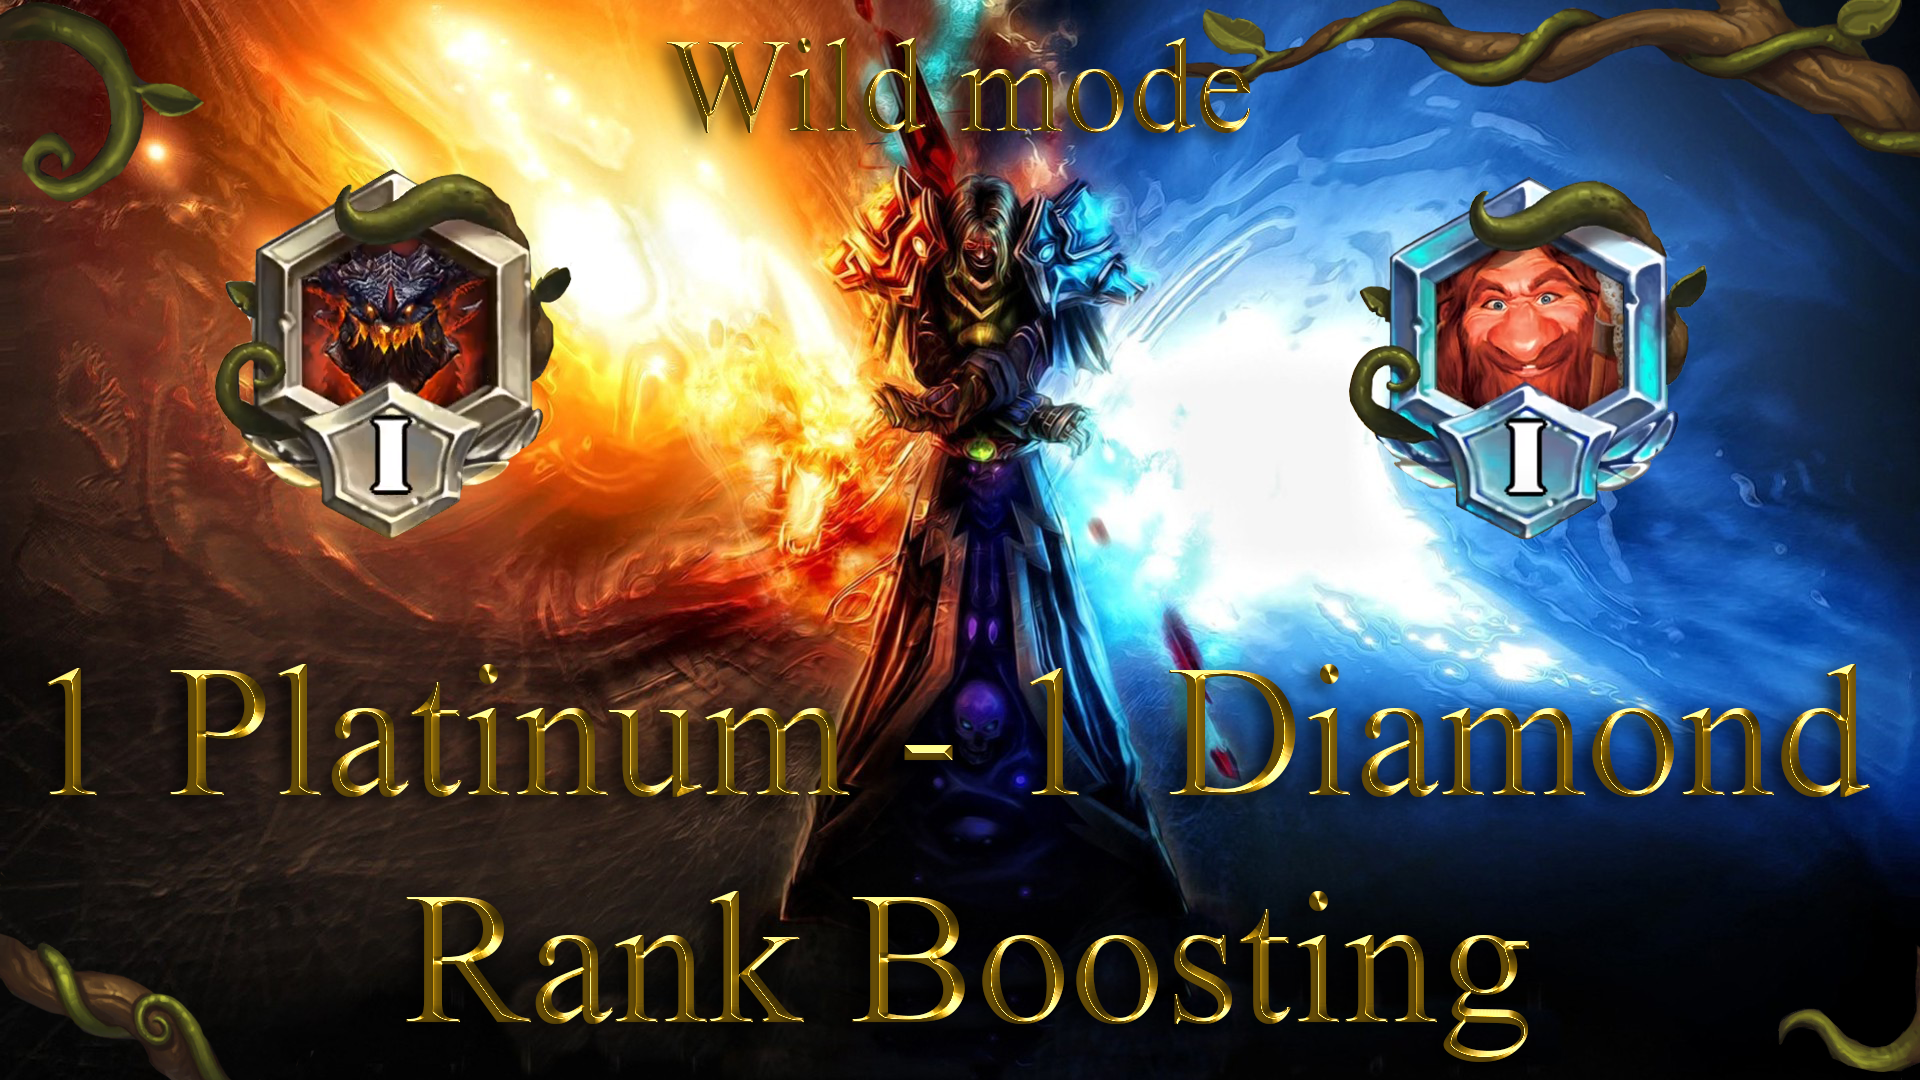 HEARTHSTONE: 1 RANK (PLATINUM) - 1 RANK (DIAMOND) WILD MODE Sedovlasiy - e2p.com